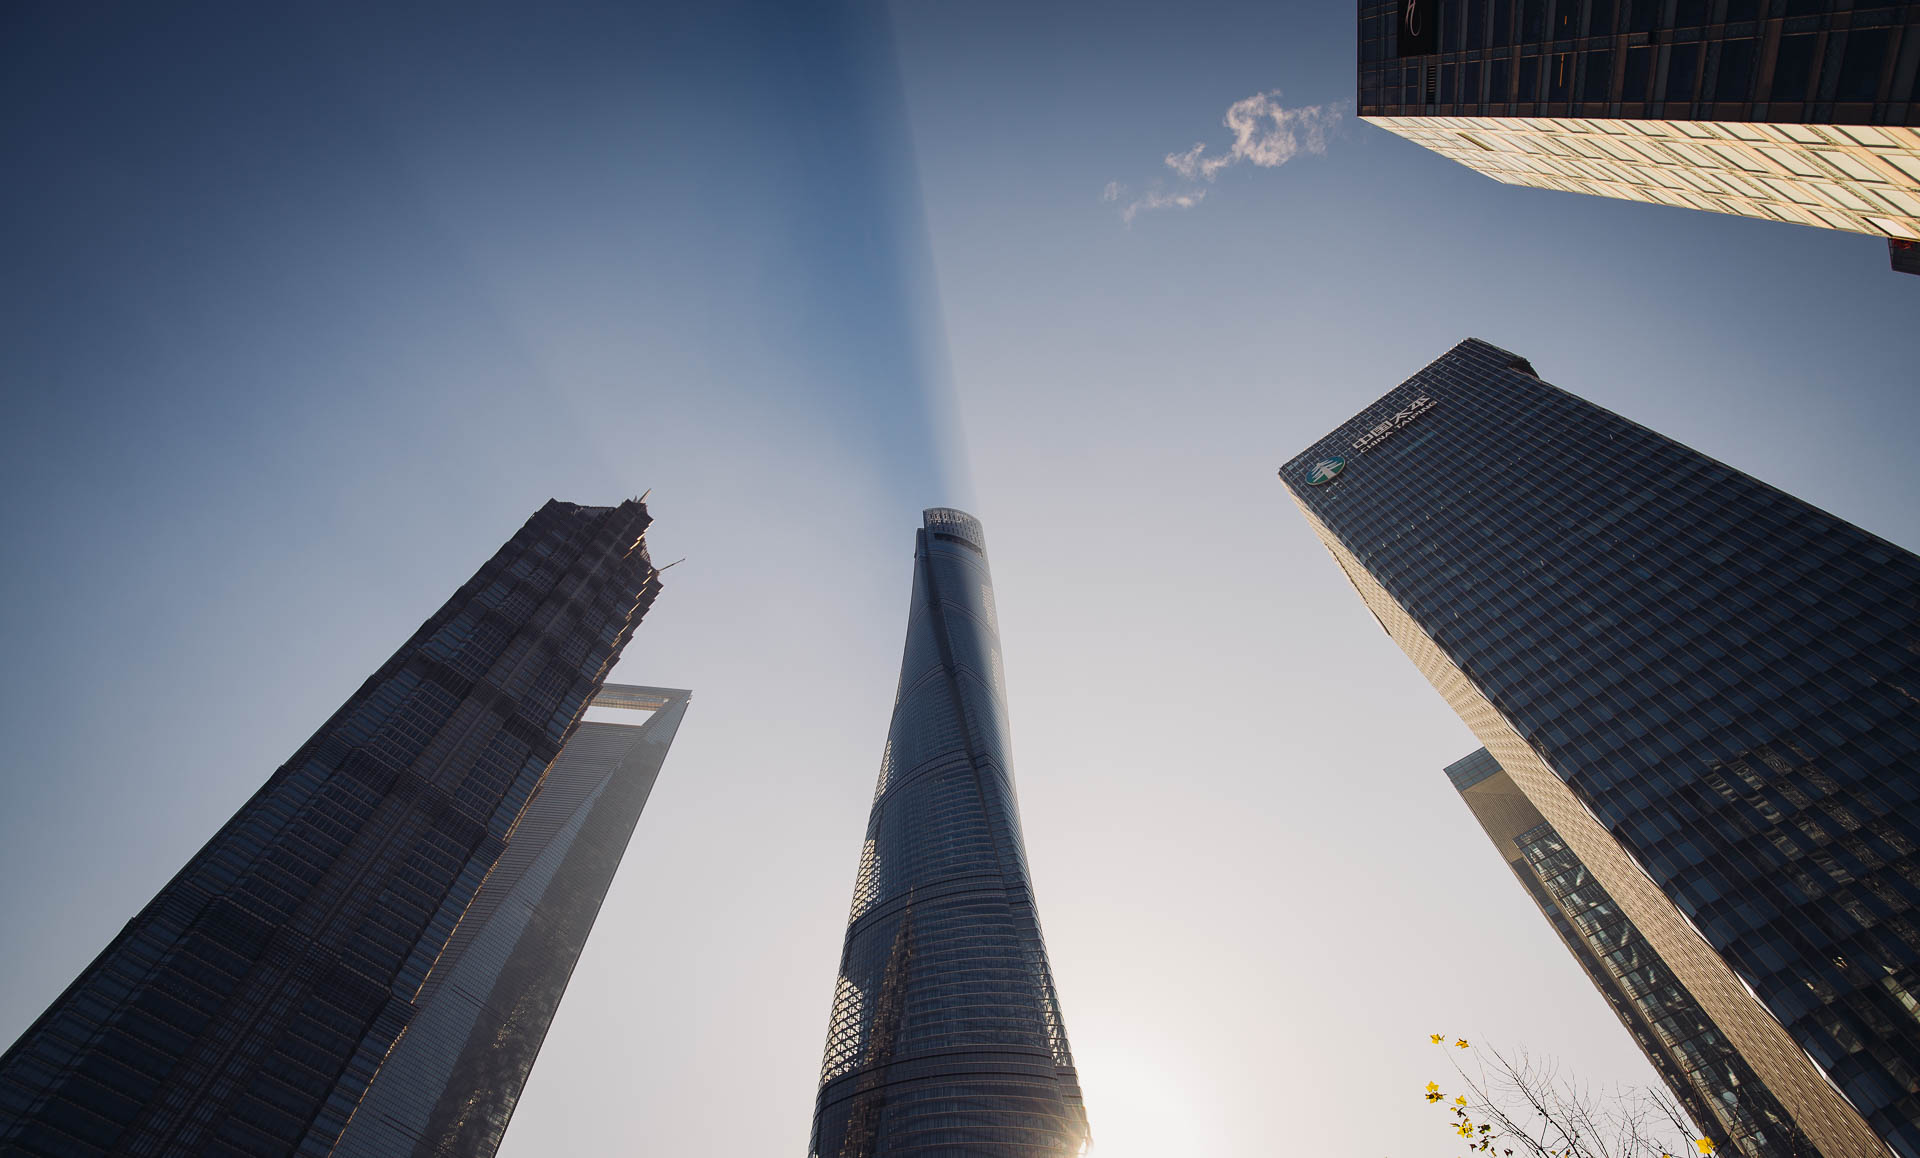 Shanghai Tower Sky